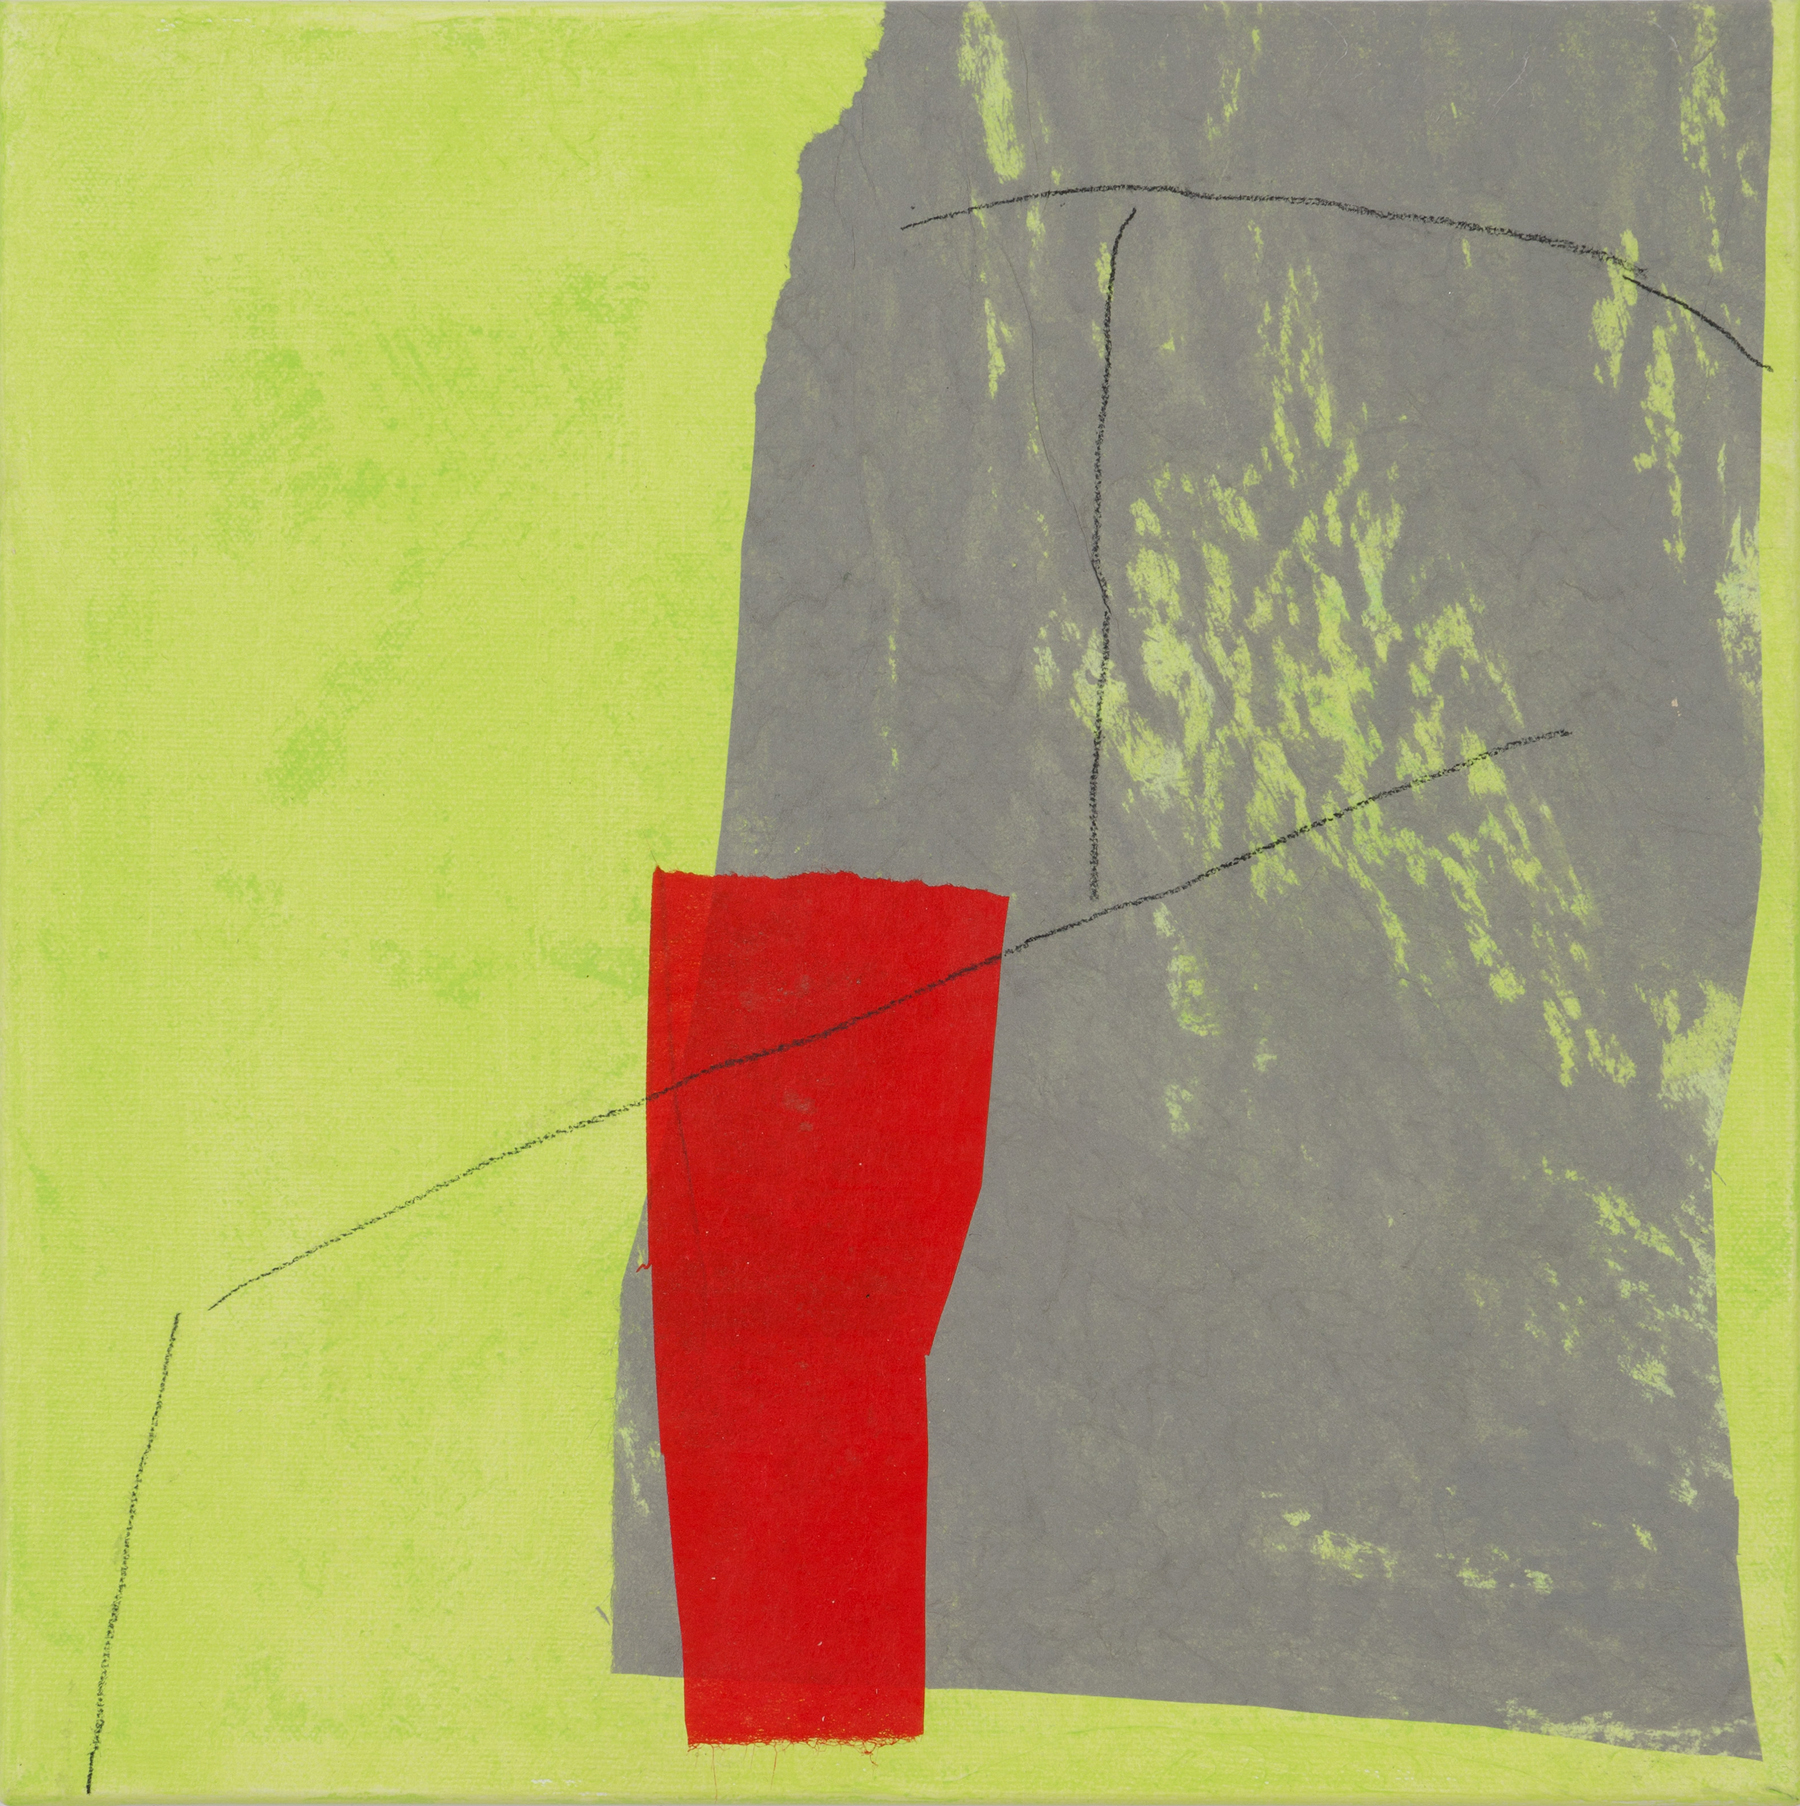 Red and Taupe on Green, 2013, papers, acrylic, pencil on canvas, 12 x 12 in, $650